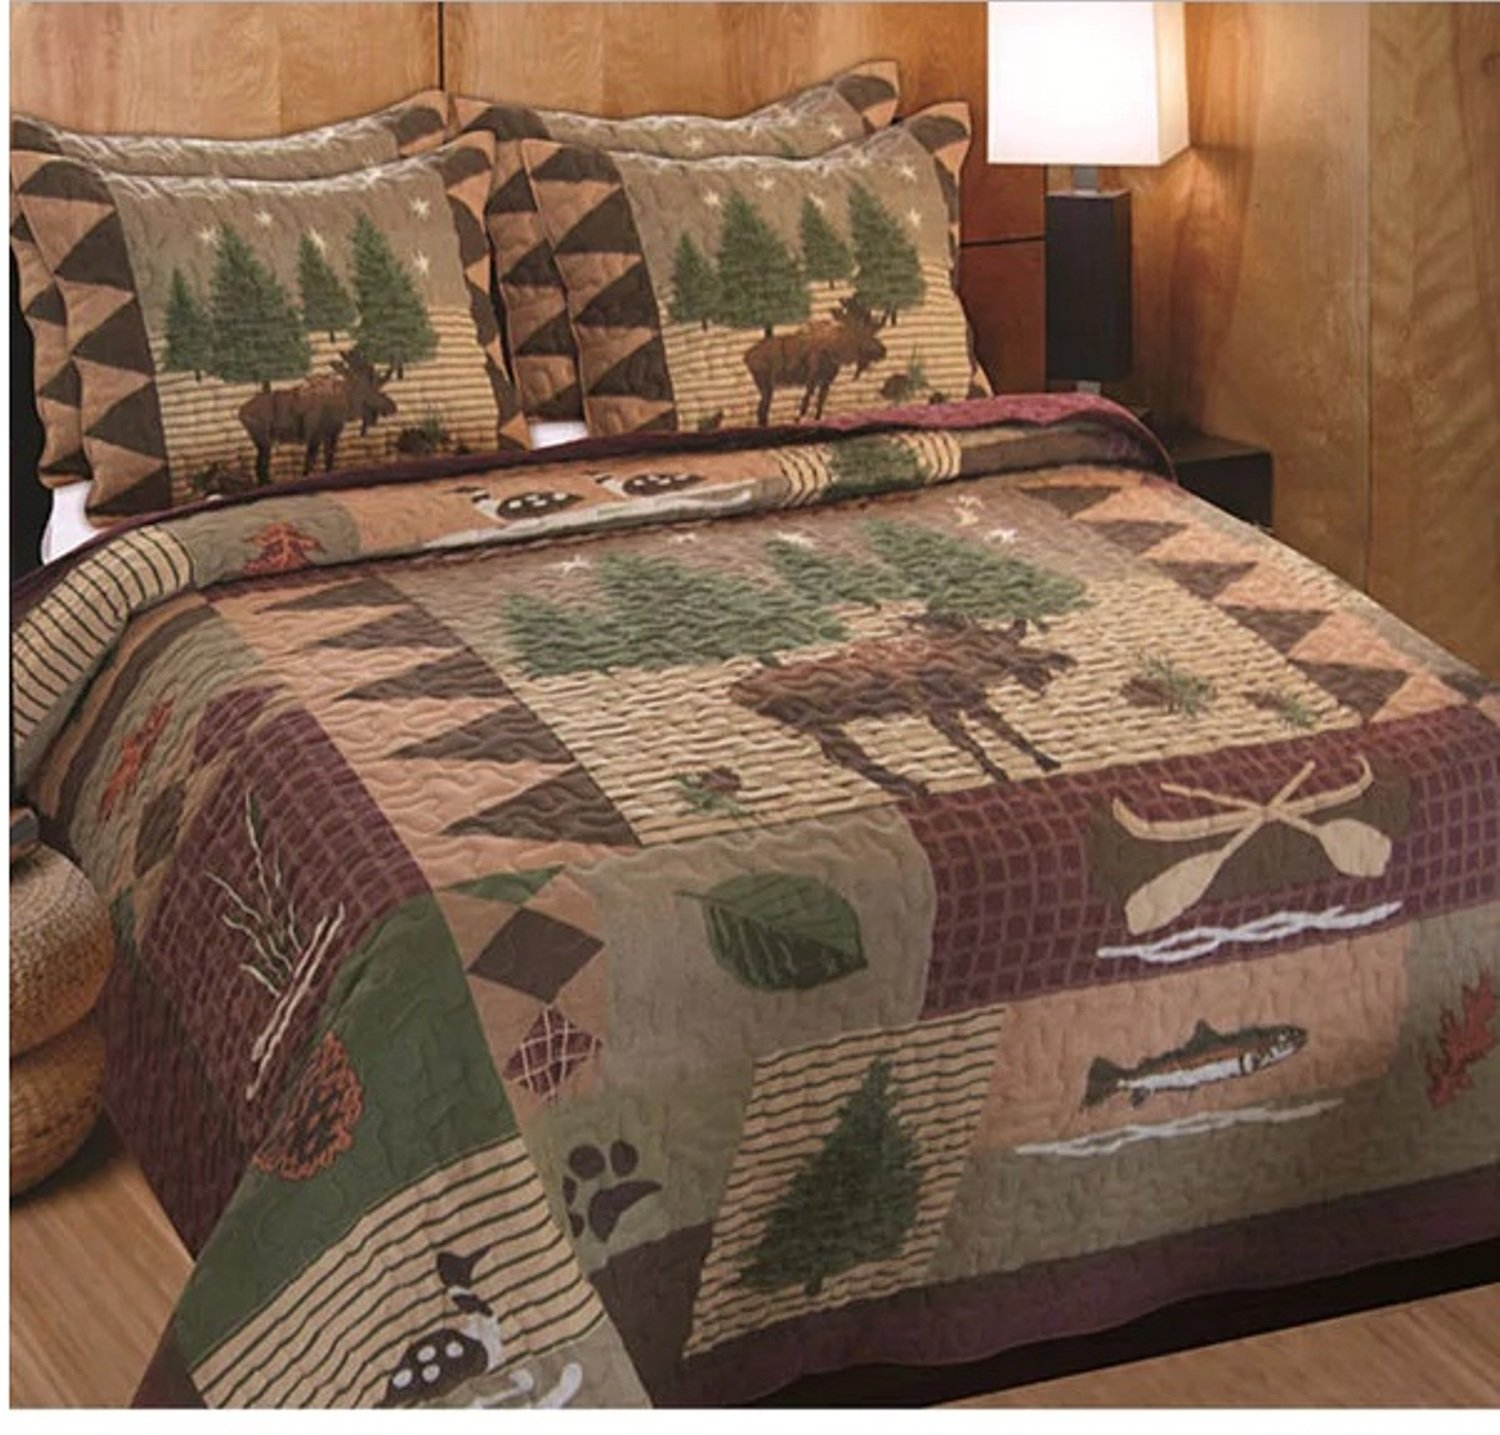 3 Piece Patchwork Moose Printed Pattern Quilt Set King Size, Featuring Rustic Tree Fish Duck Design Comfortable Bedding, Contemporary Animal Inspired Bedroom Decoration, Brown, Green, Multicolor